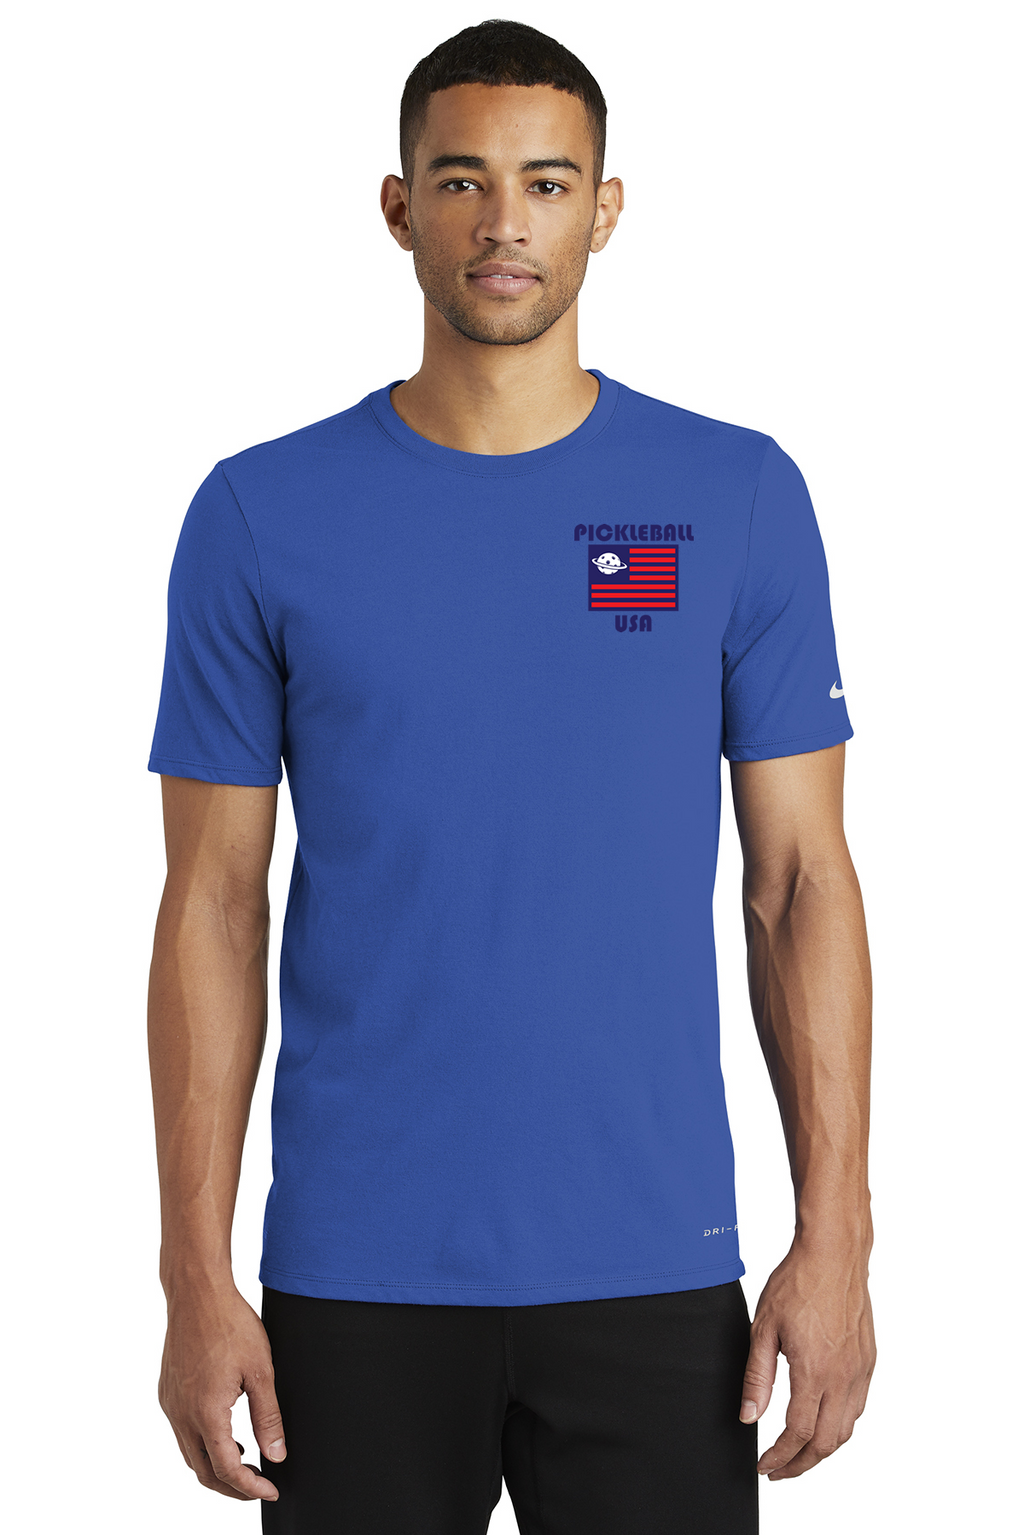 Men's Nike Dri-FIT Cotton/Poly SS Tee 'Pickleball USA'